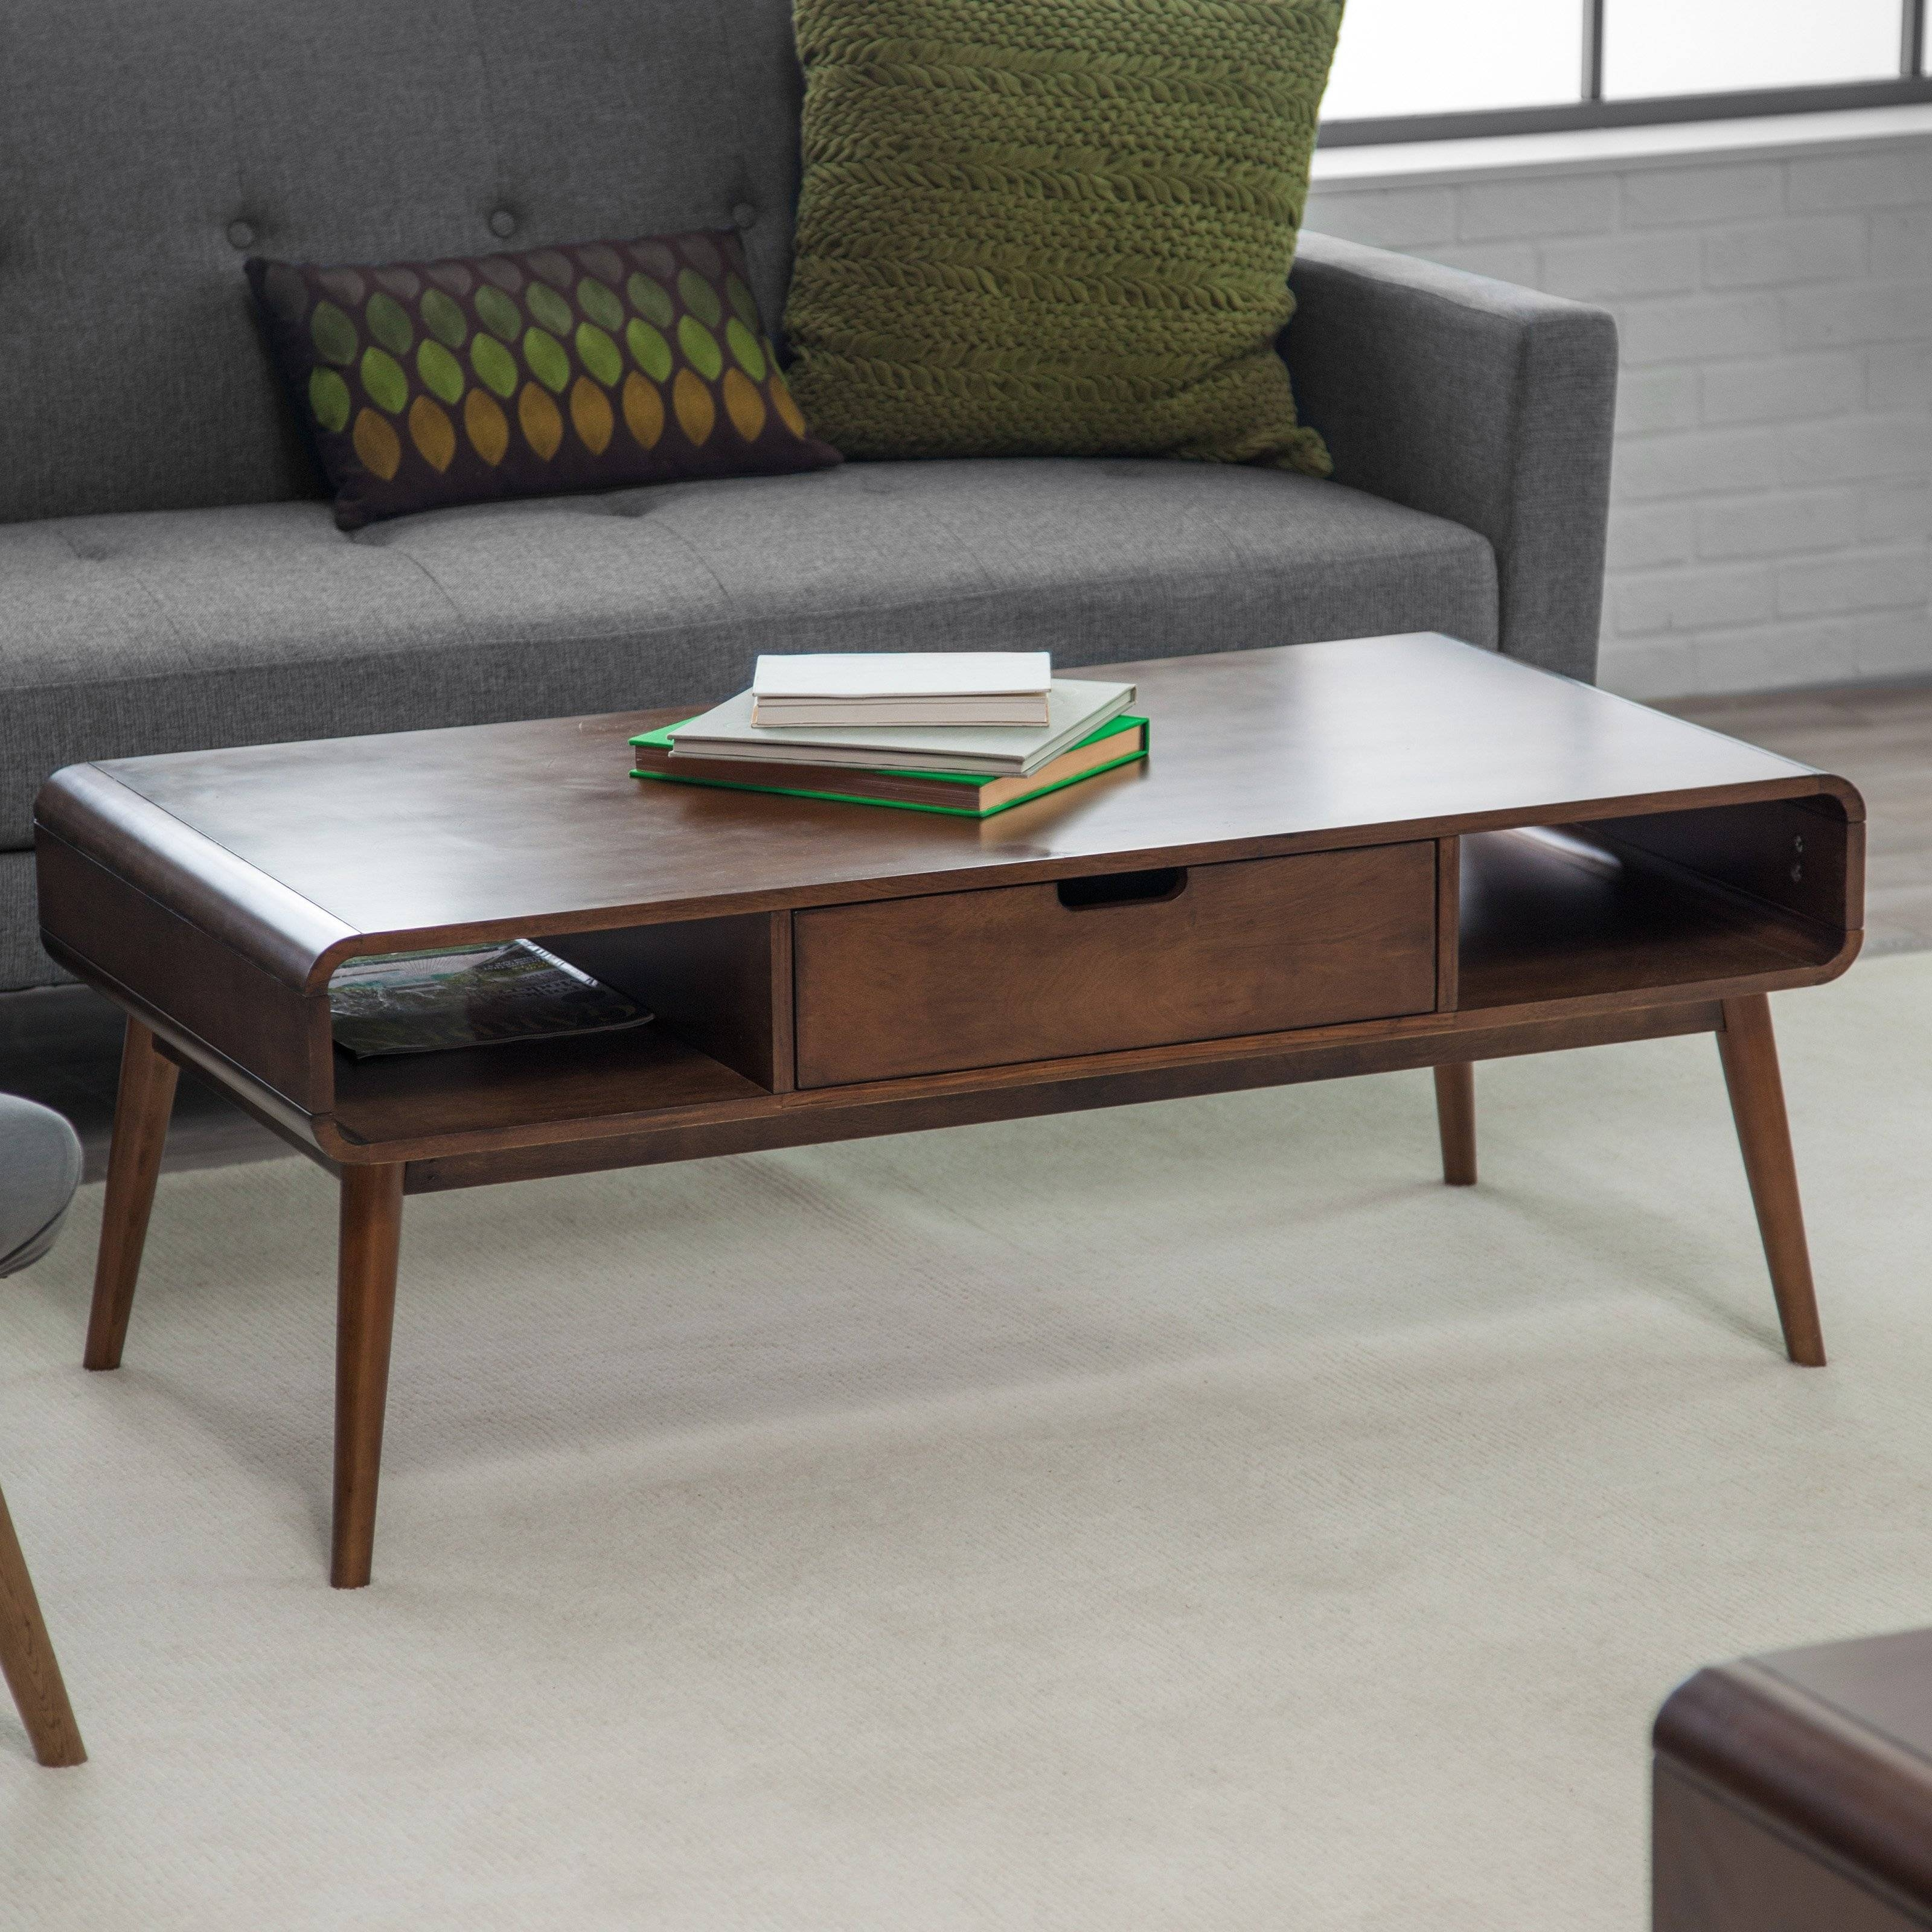 Belham Living Carter Mid Century Modern Coffee Table | Hayneedle For Modern Coffee Table (View 2 of 15)